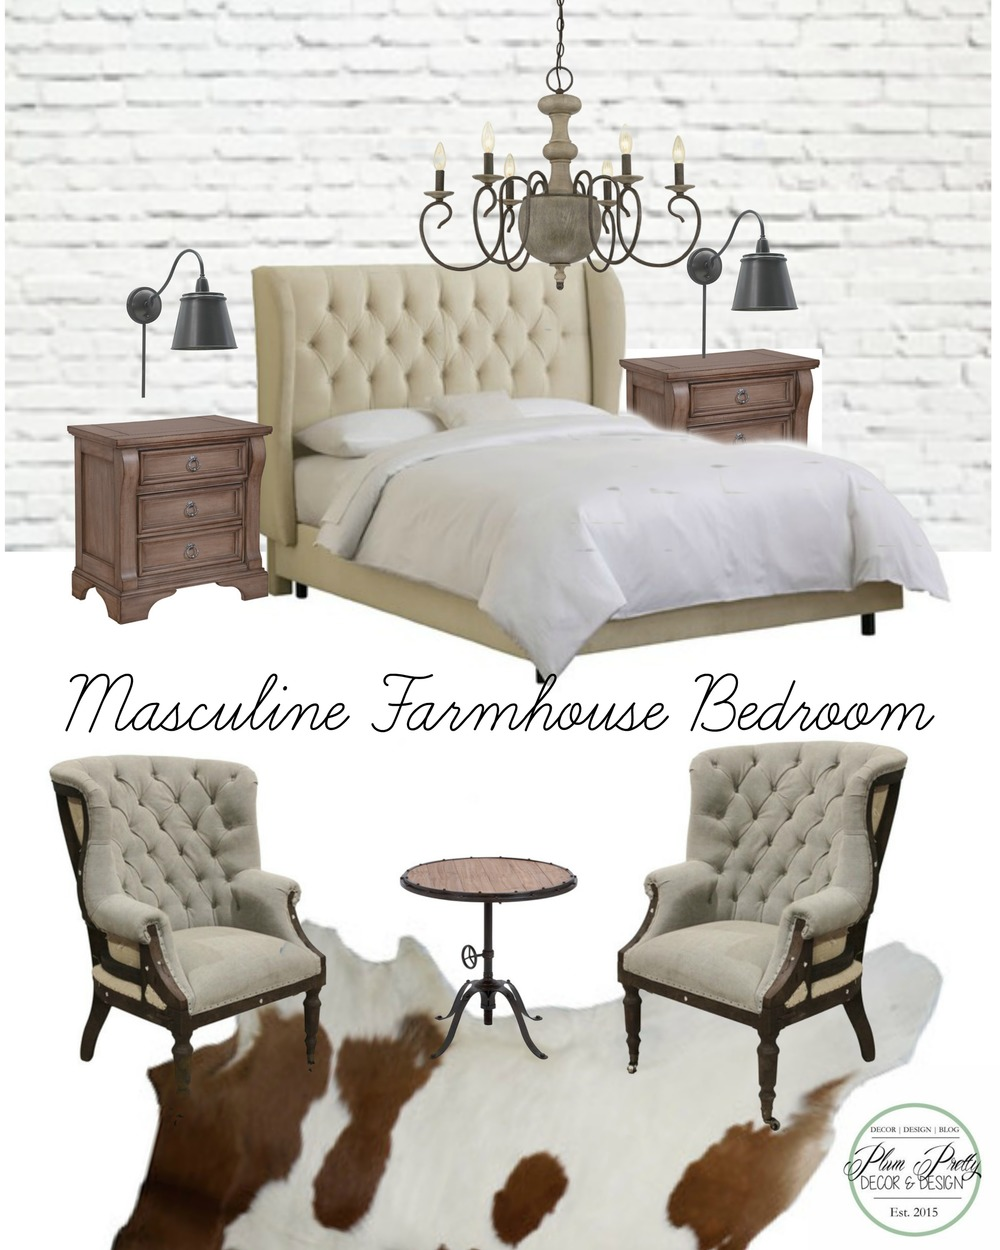 masculinefarmhousebedroom.jpg